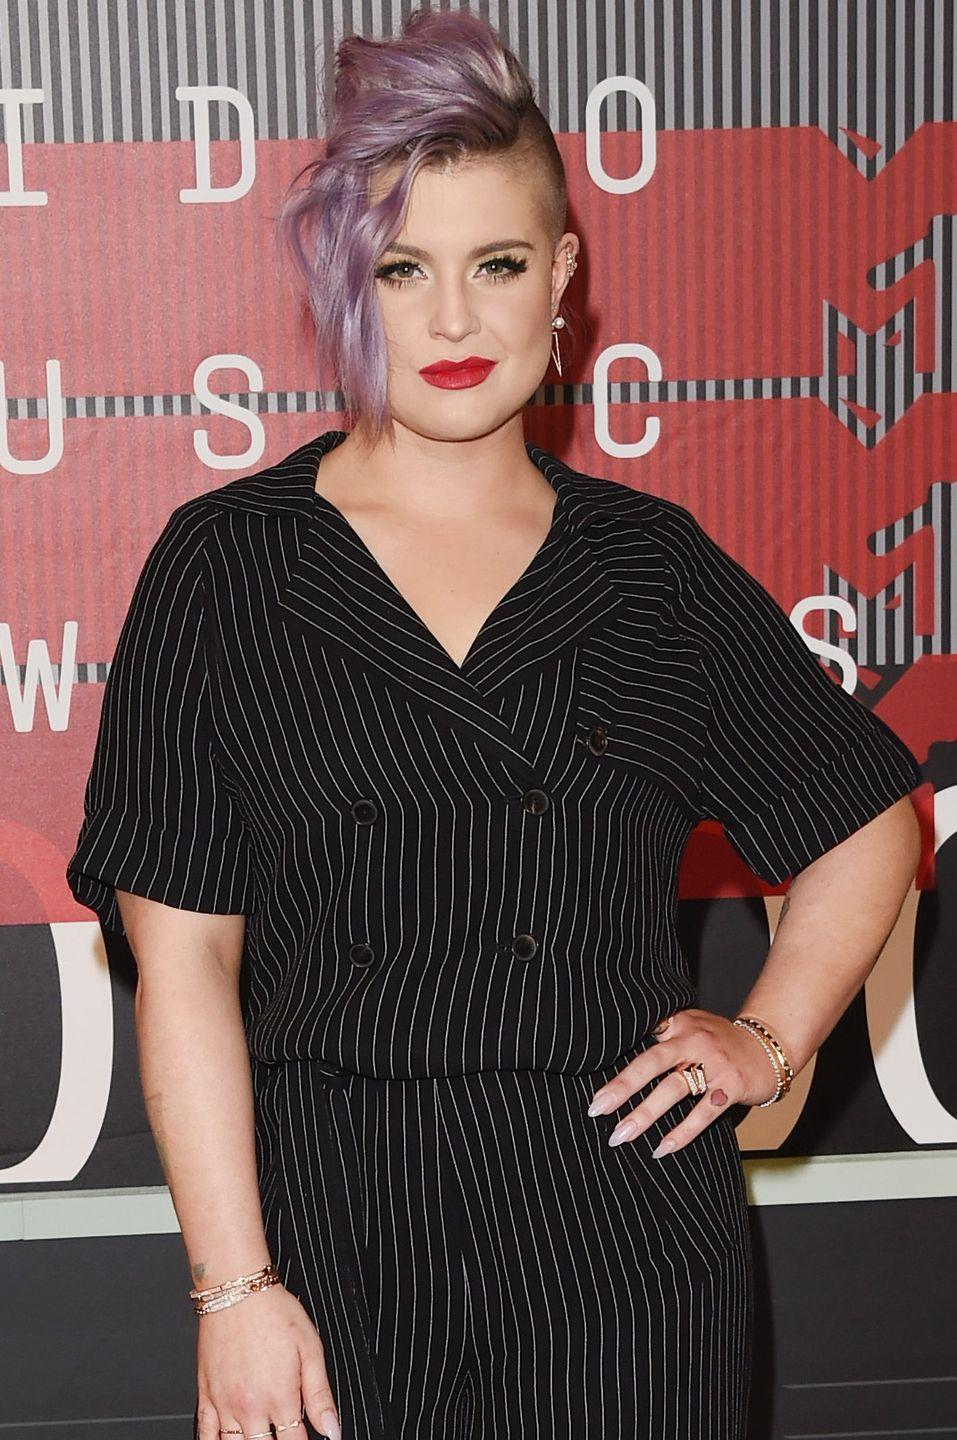 """<p>The British media mogul struggled with her alcohol and drug addictions the most when her parents, Sharon and Ozzy Osbourne, were experiencing life-threatening illnesses in the early 2000s. Osbourne has now successfully been living in sobriety for over seven years. </p><p>H/T: <a href=""""http://people.com/books/kelly-osbourne-once-committed-mental-institution-drug-abuse/"""" rel=""""nofollow noopener"""" target=""""_blank"""" data-ylk=""""slk:People"""" class=""""link rapid-noclick-resp"""">People</a> </p>"""